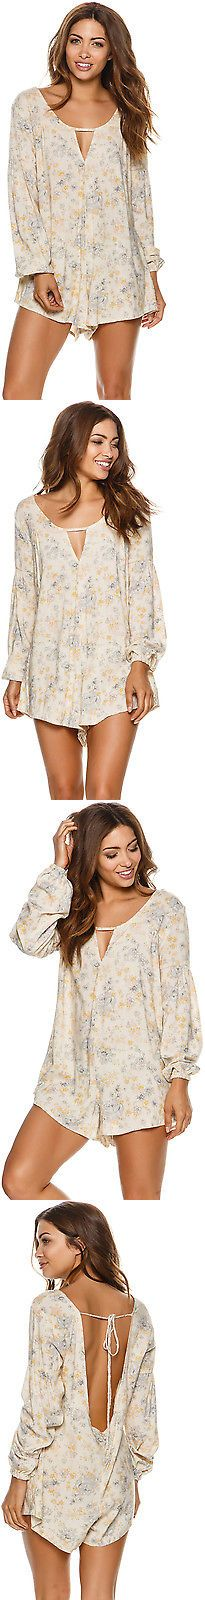 Jumpsuits And Rompers: New Saltwater Luxe Women S Wallflower Romper V-Neck Rayon White -> BUY IT NOW ONLY: $127.95 on eBay!